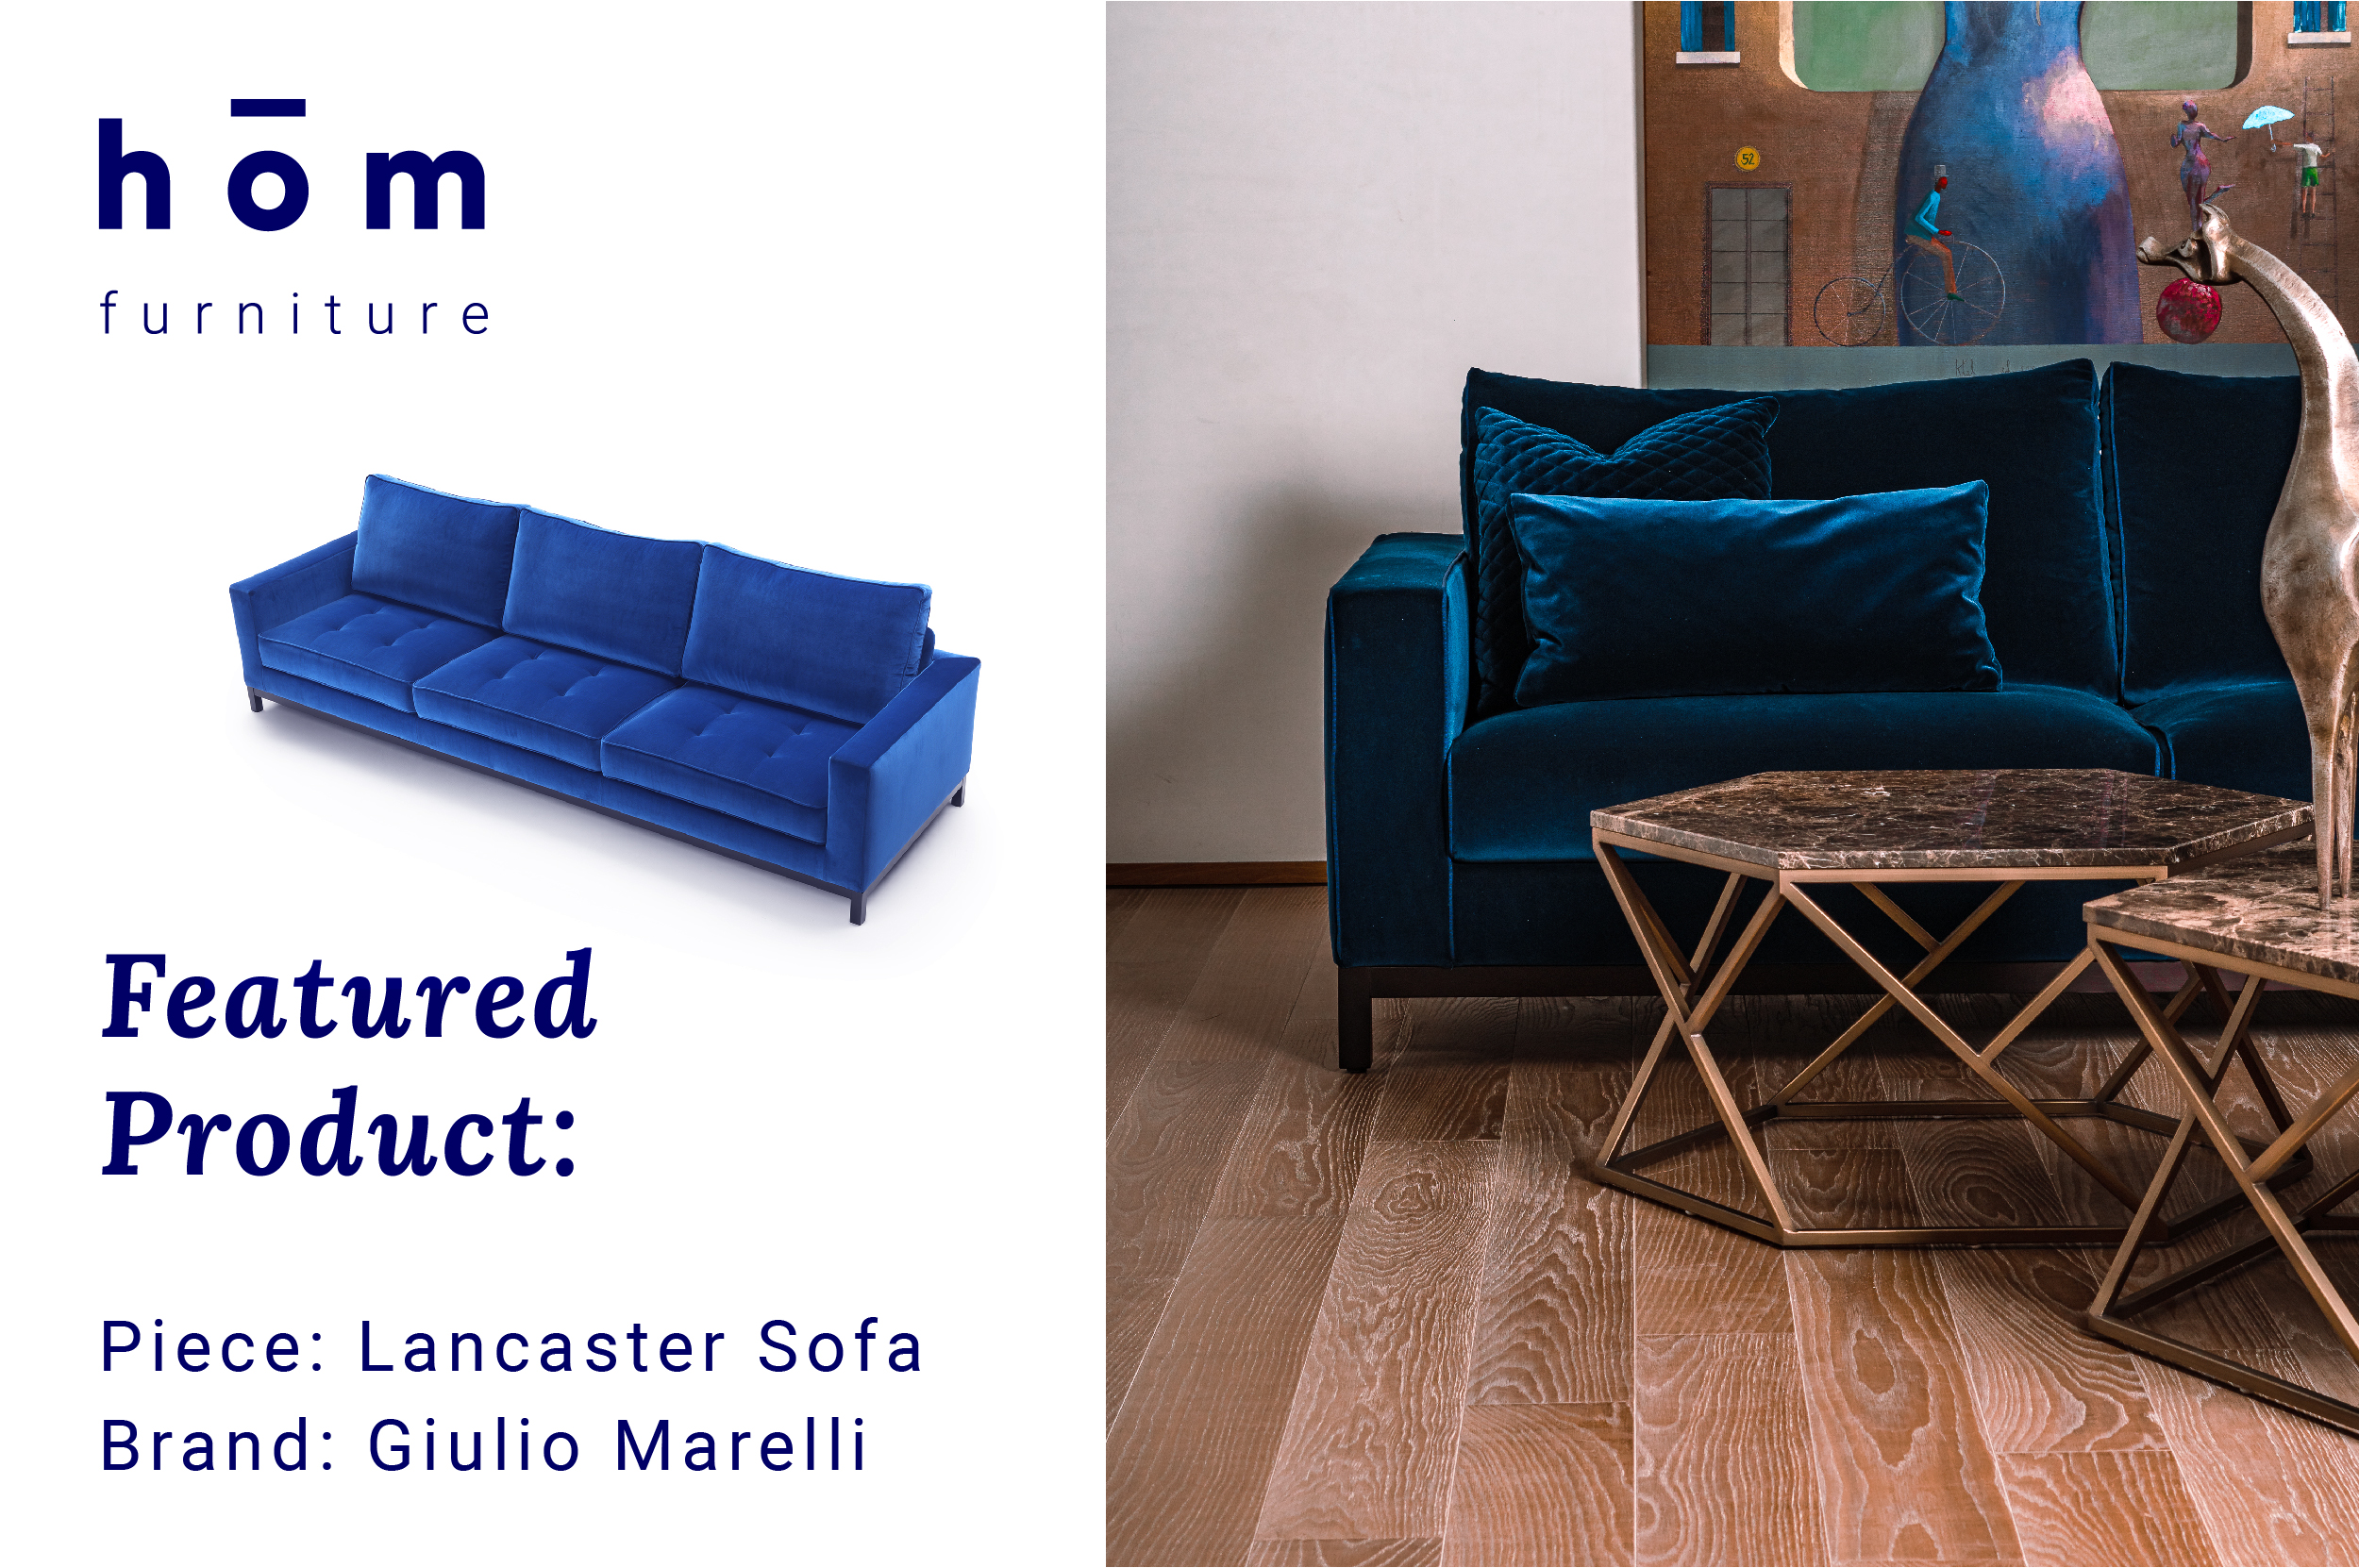 Lancaster Sofa by Giulio Marelli at hom interiors Kuwait - homkw